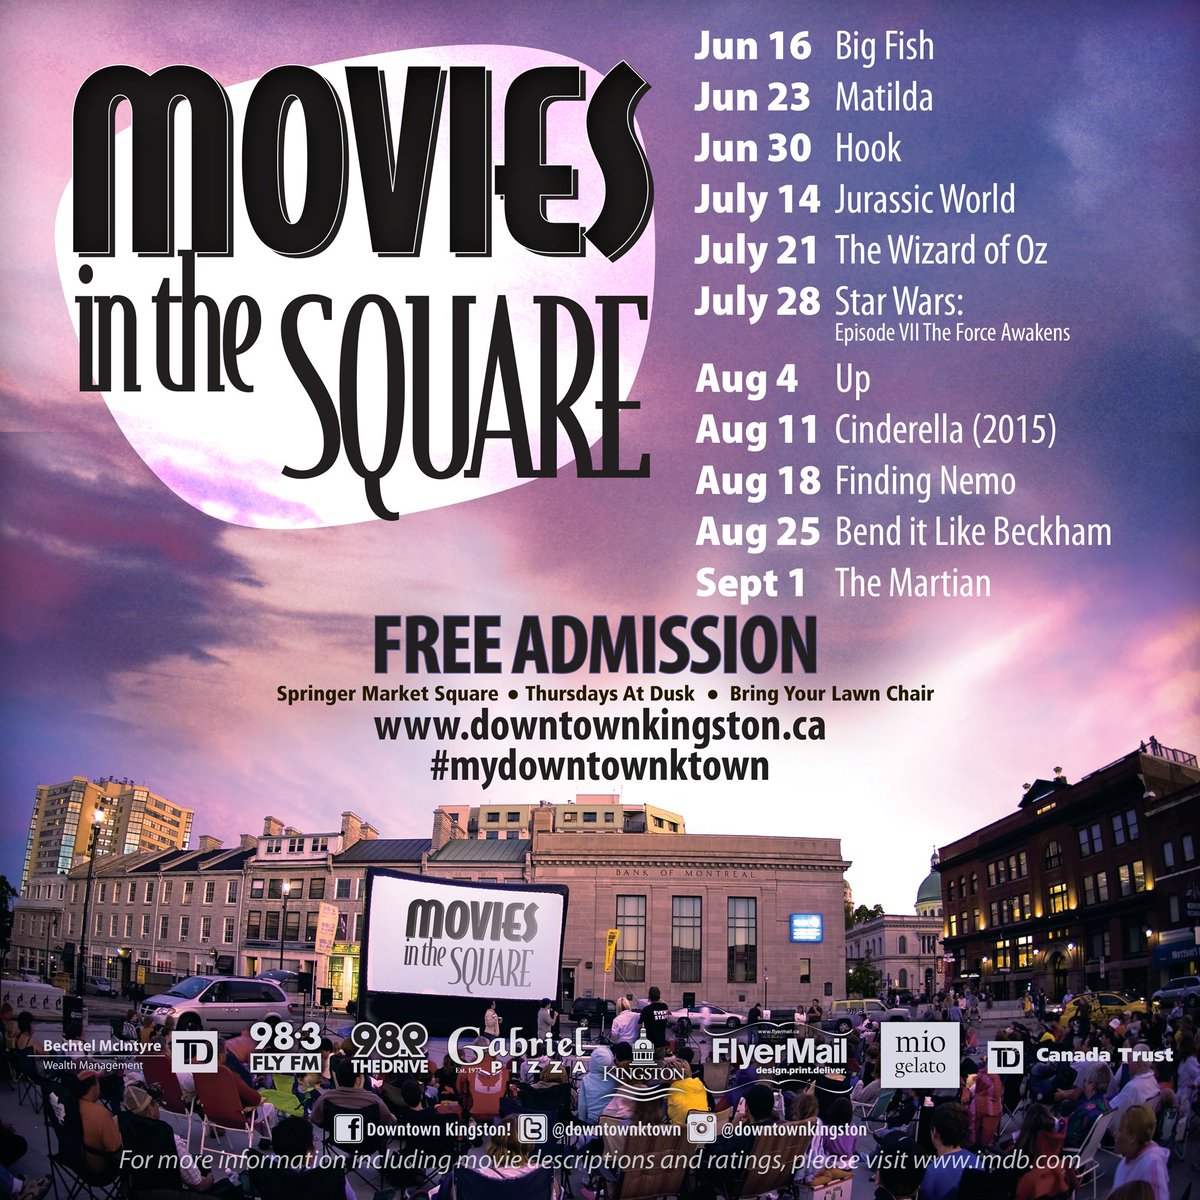 Movies in the Square starts tonight at dusk in Springer Market Square! Please note there has been a date change #ygk https://t.co/K3S8JELt0x